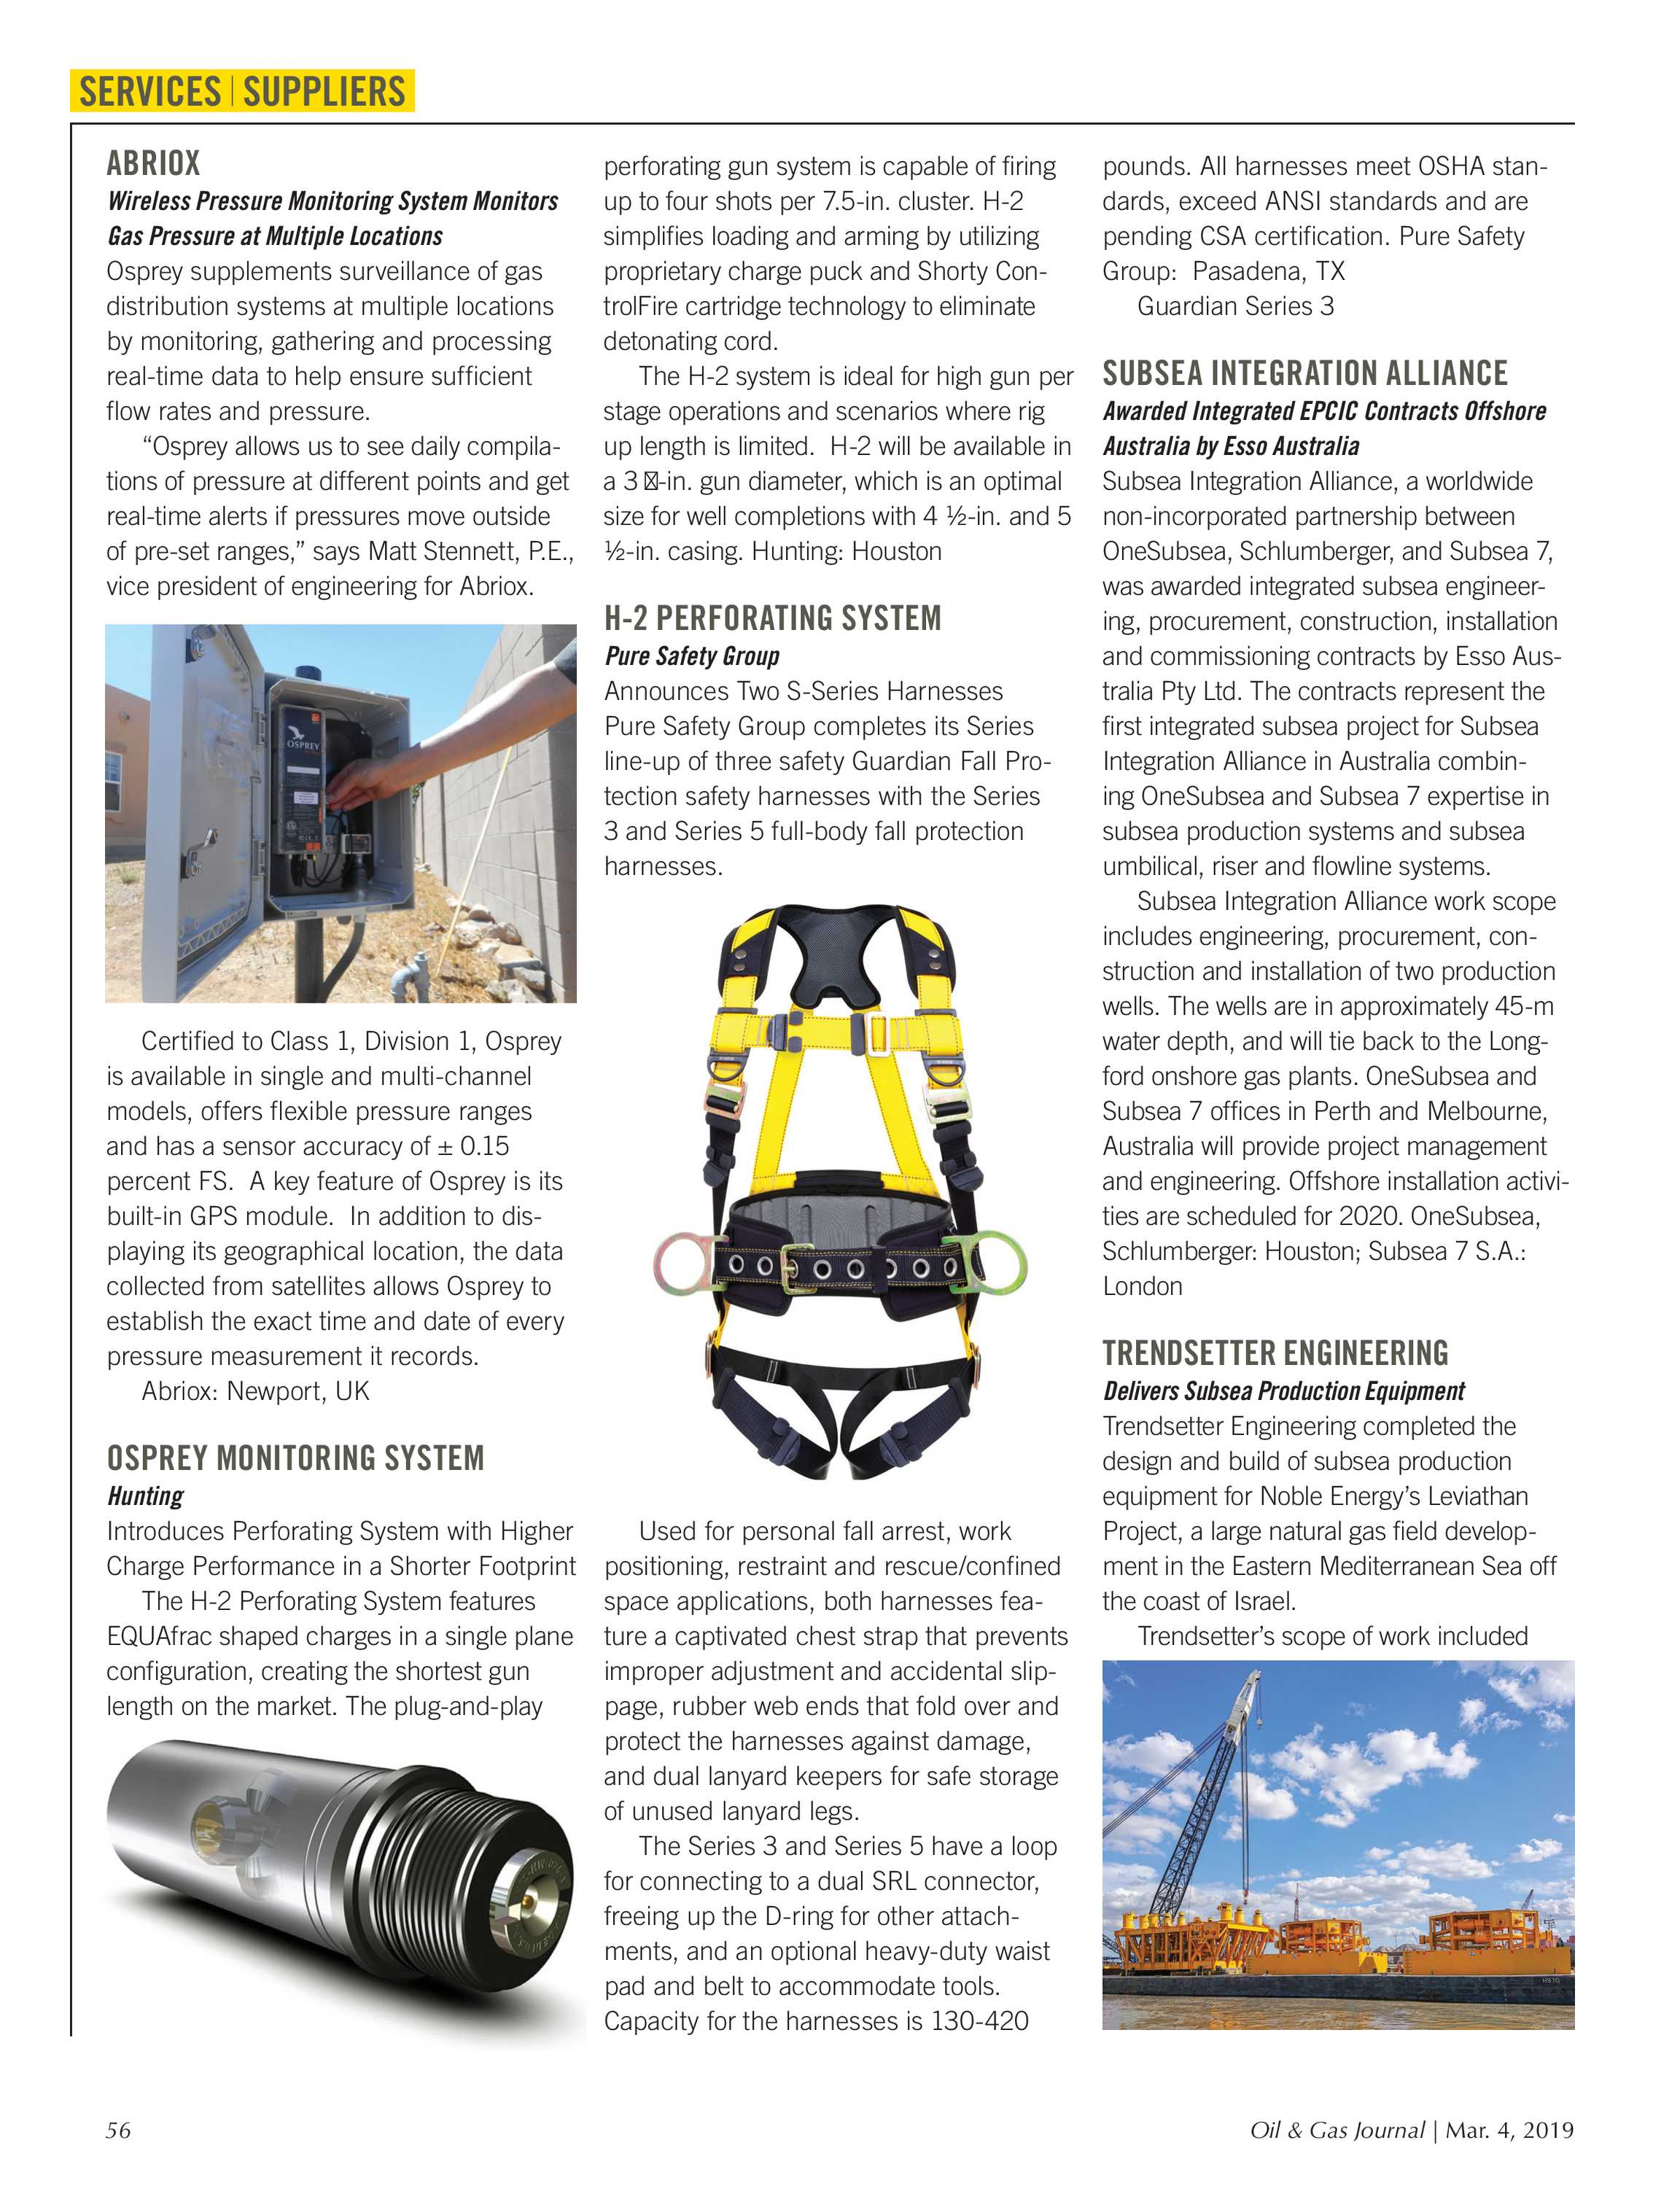 Oil & Gas Journal - March 4, 2019 - page 56